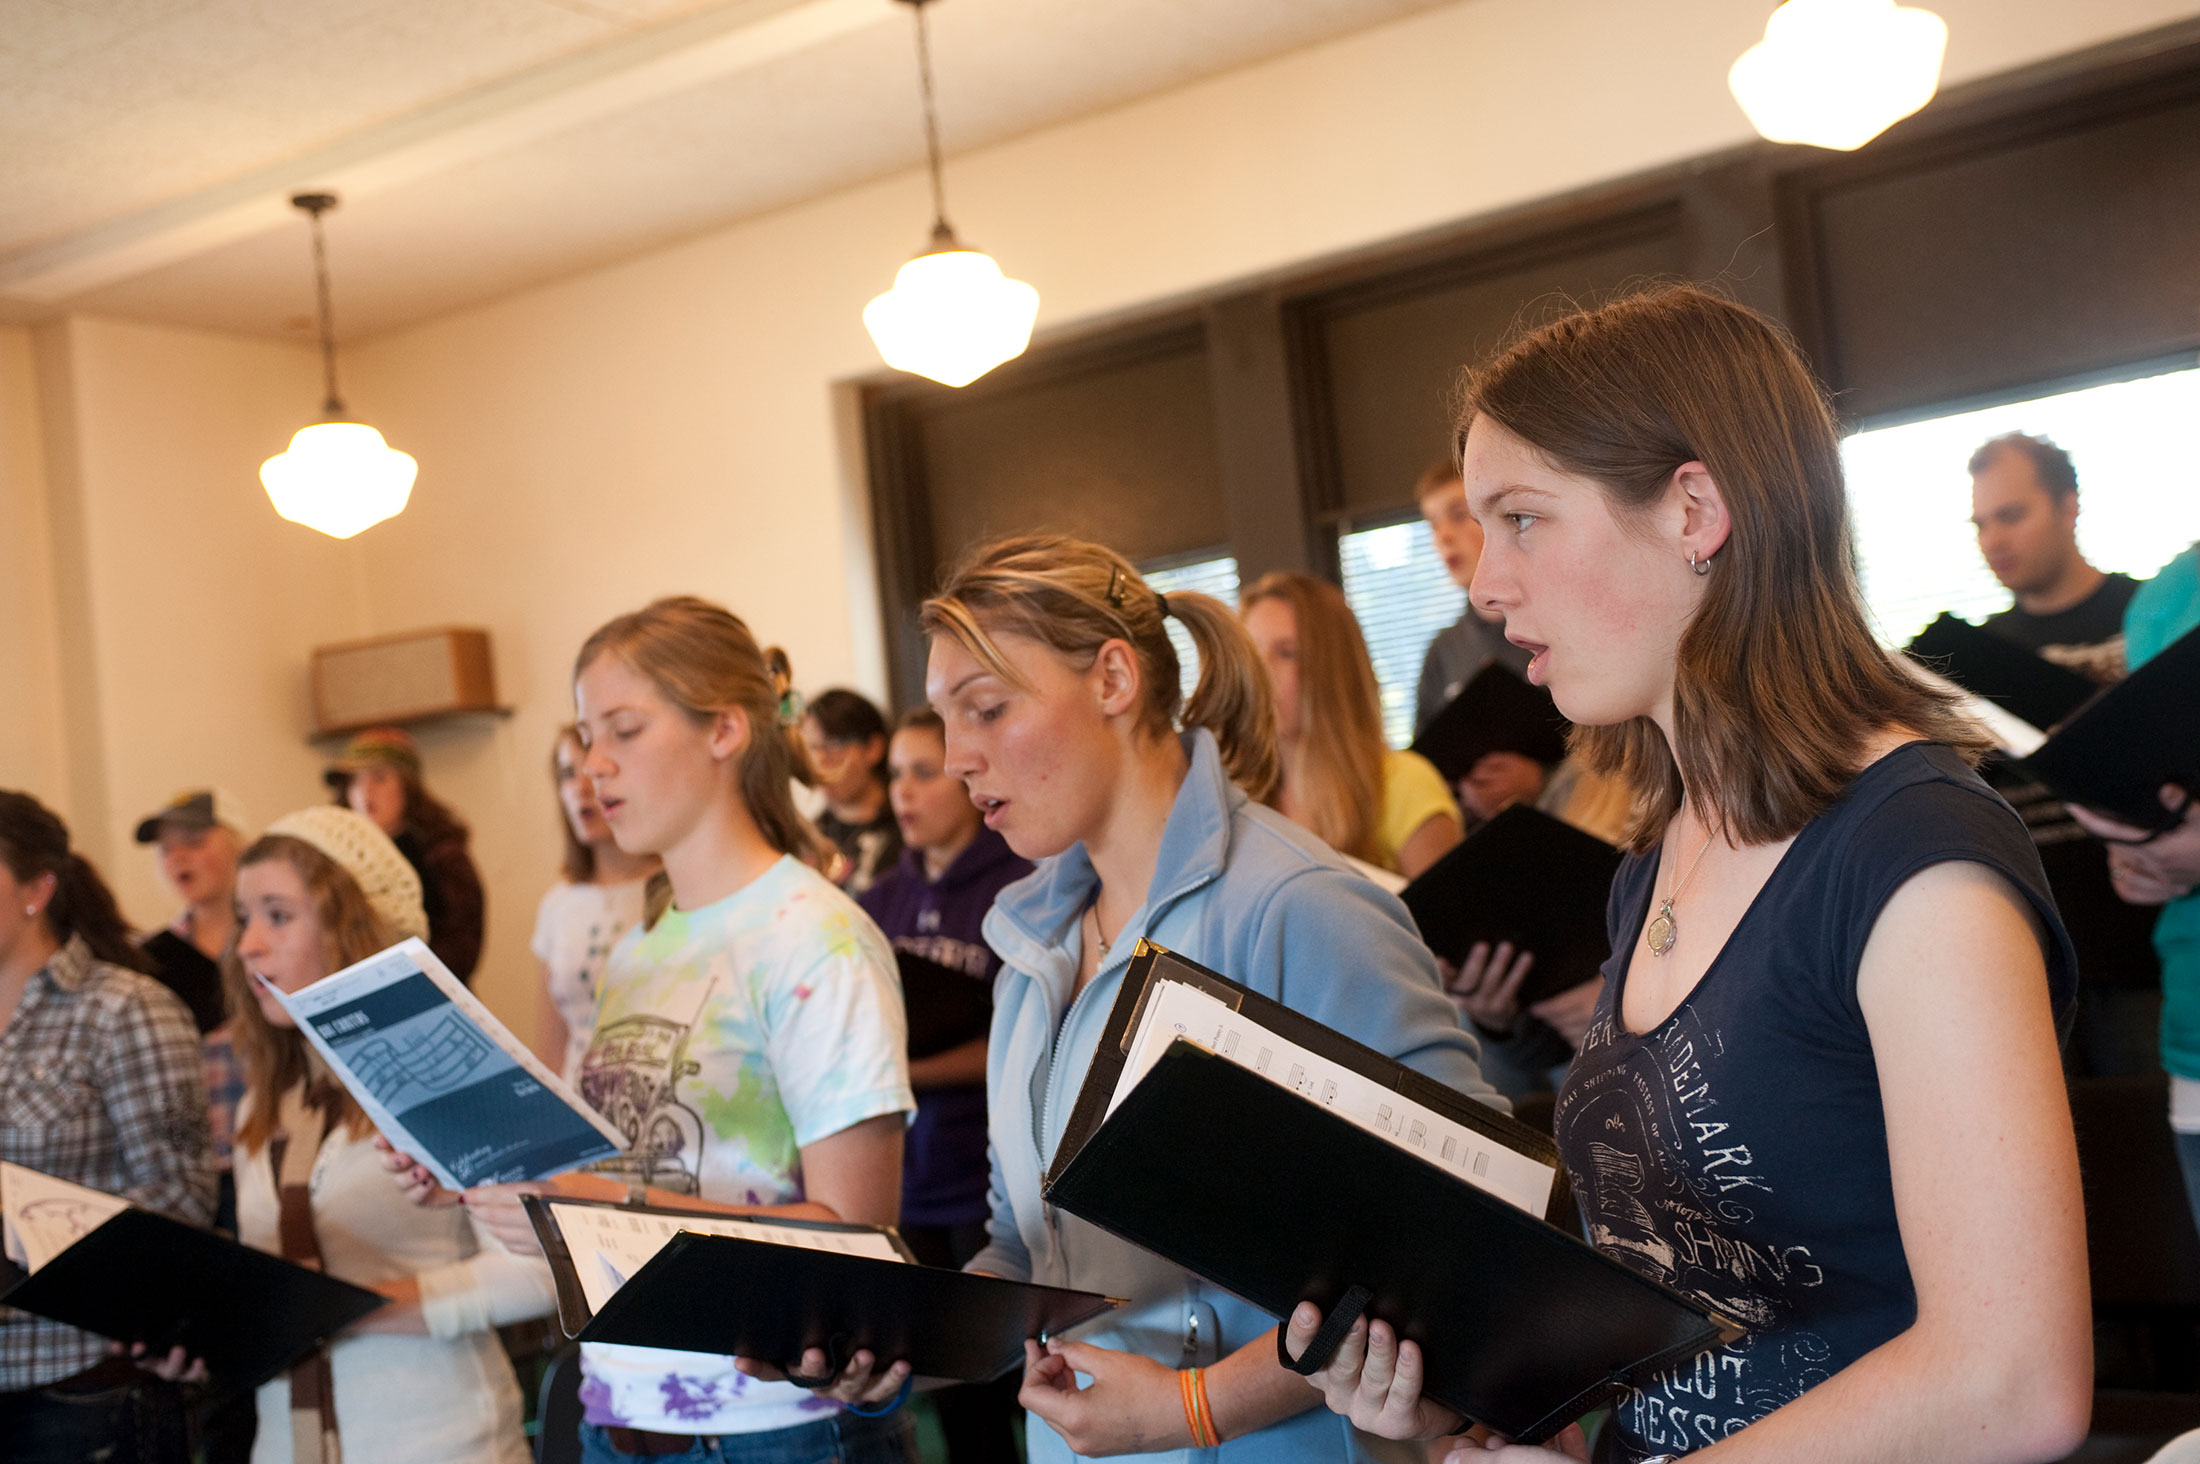 Image of Choir Singing and holding Song Books